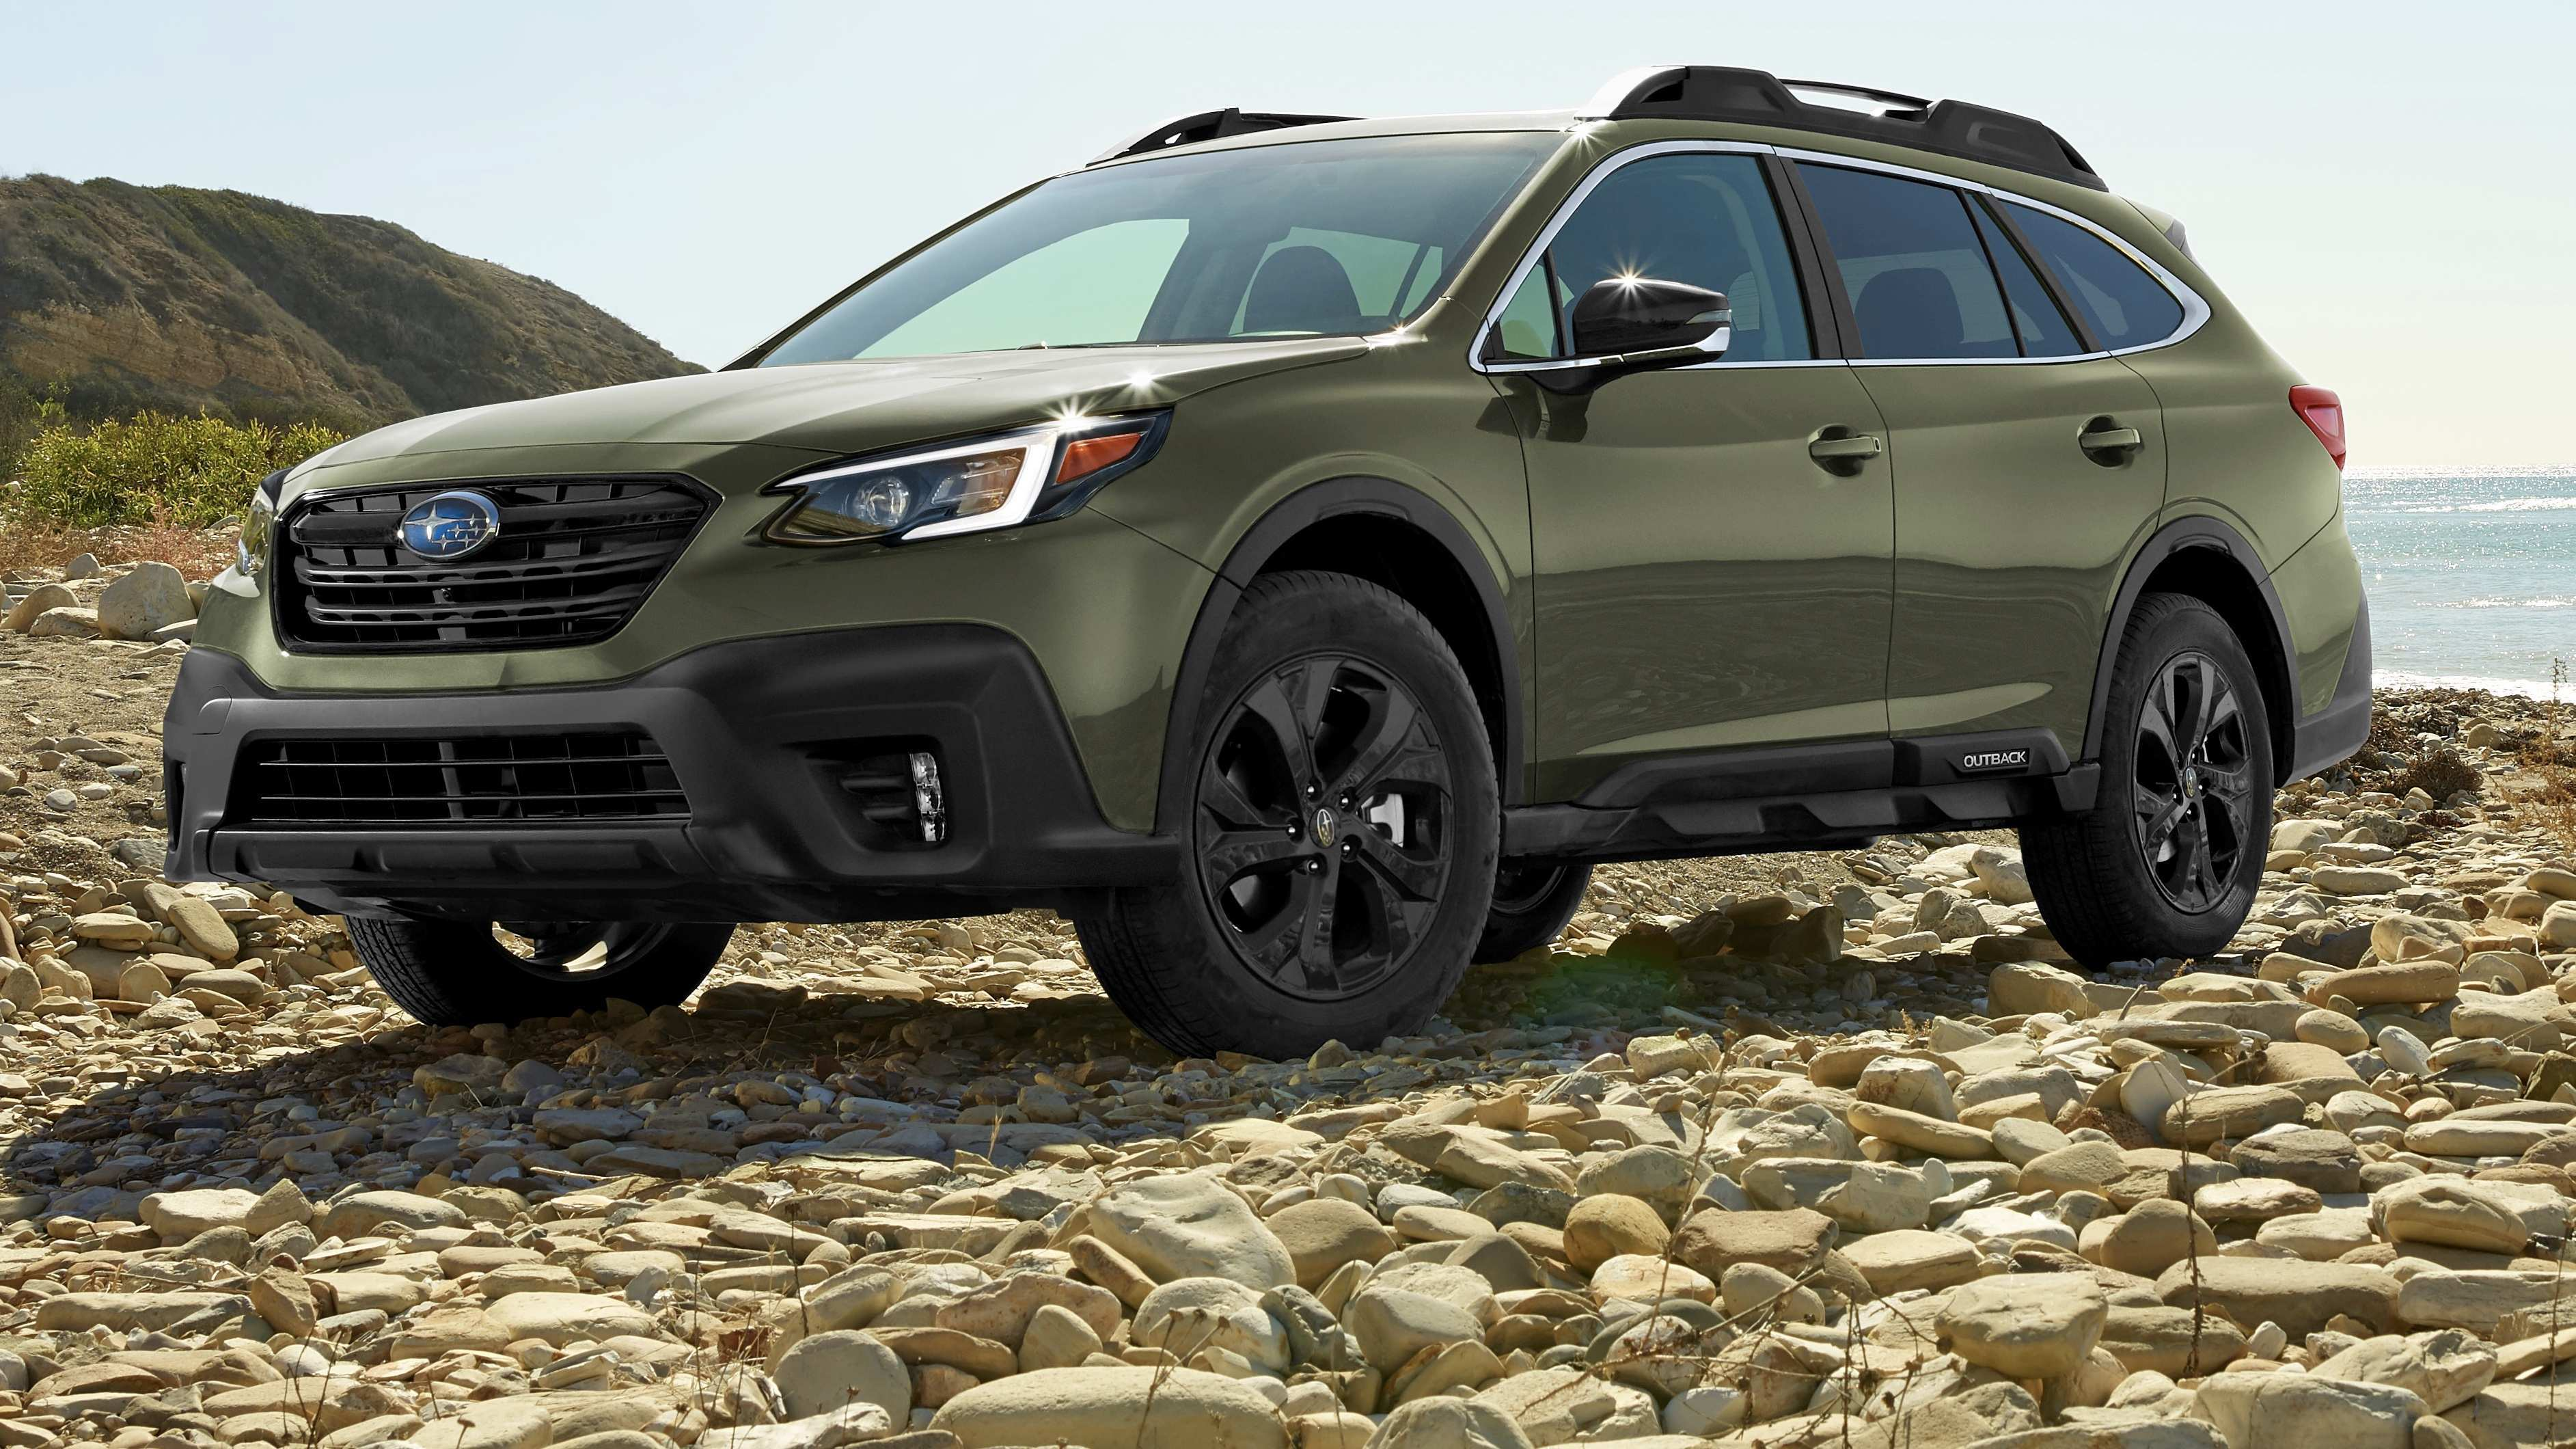 40 All New Subaru Outback 2020 Release Date Specs